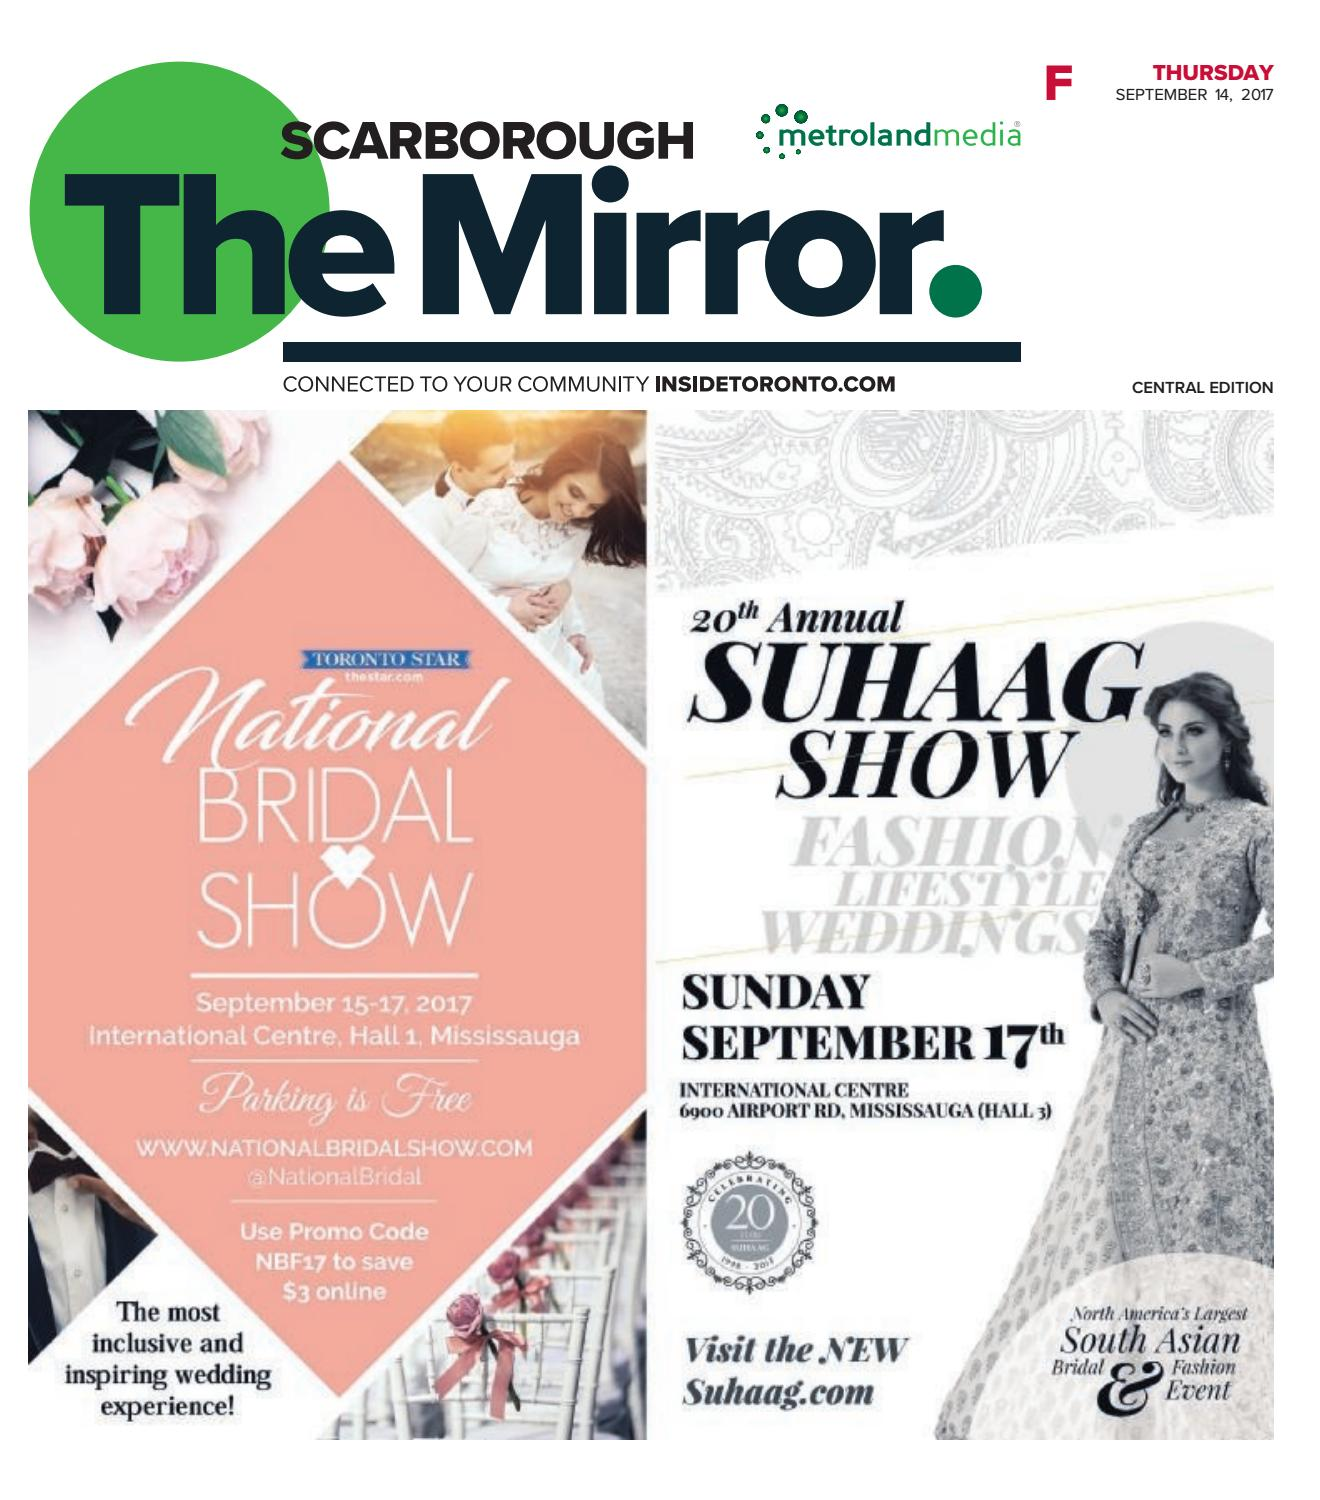 The scarborough mirror central september 14 2017 by the the scarborough mirror central september 14 2017 by the scarborough mirror issuu malvernweather Image collections